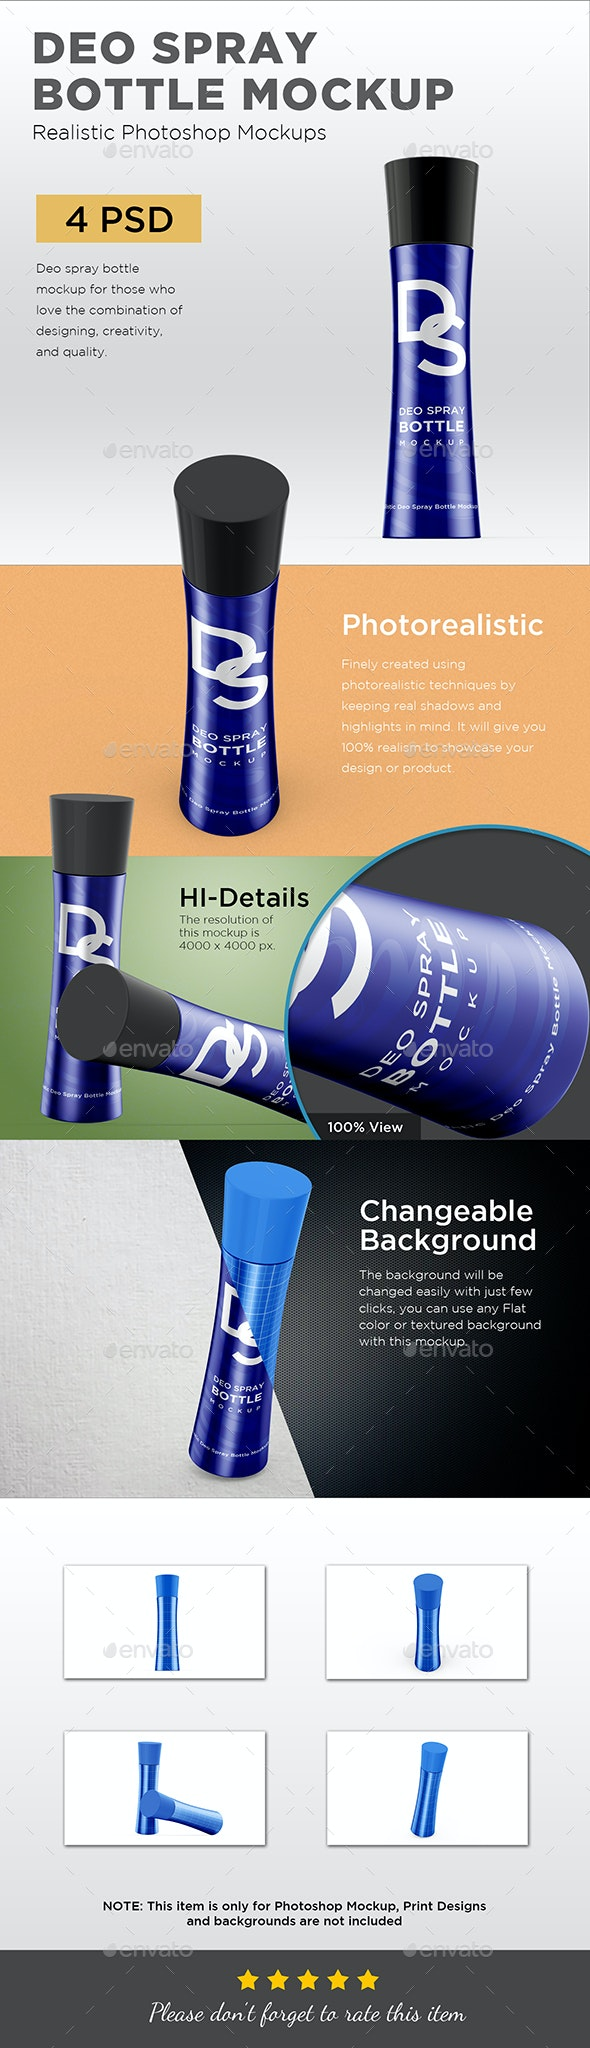 Deo Spray Bottle Mockup - Packaging Product Mock-Ups